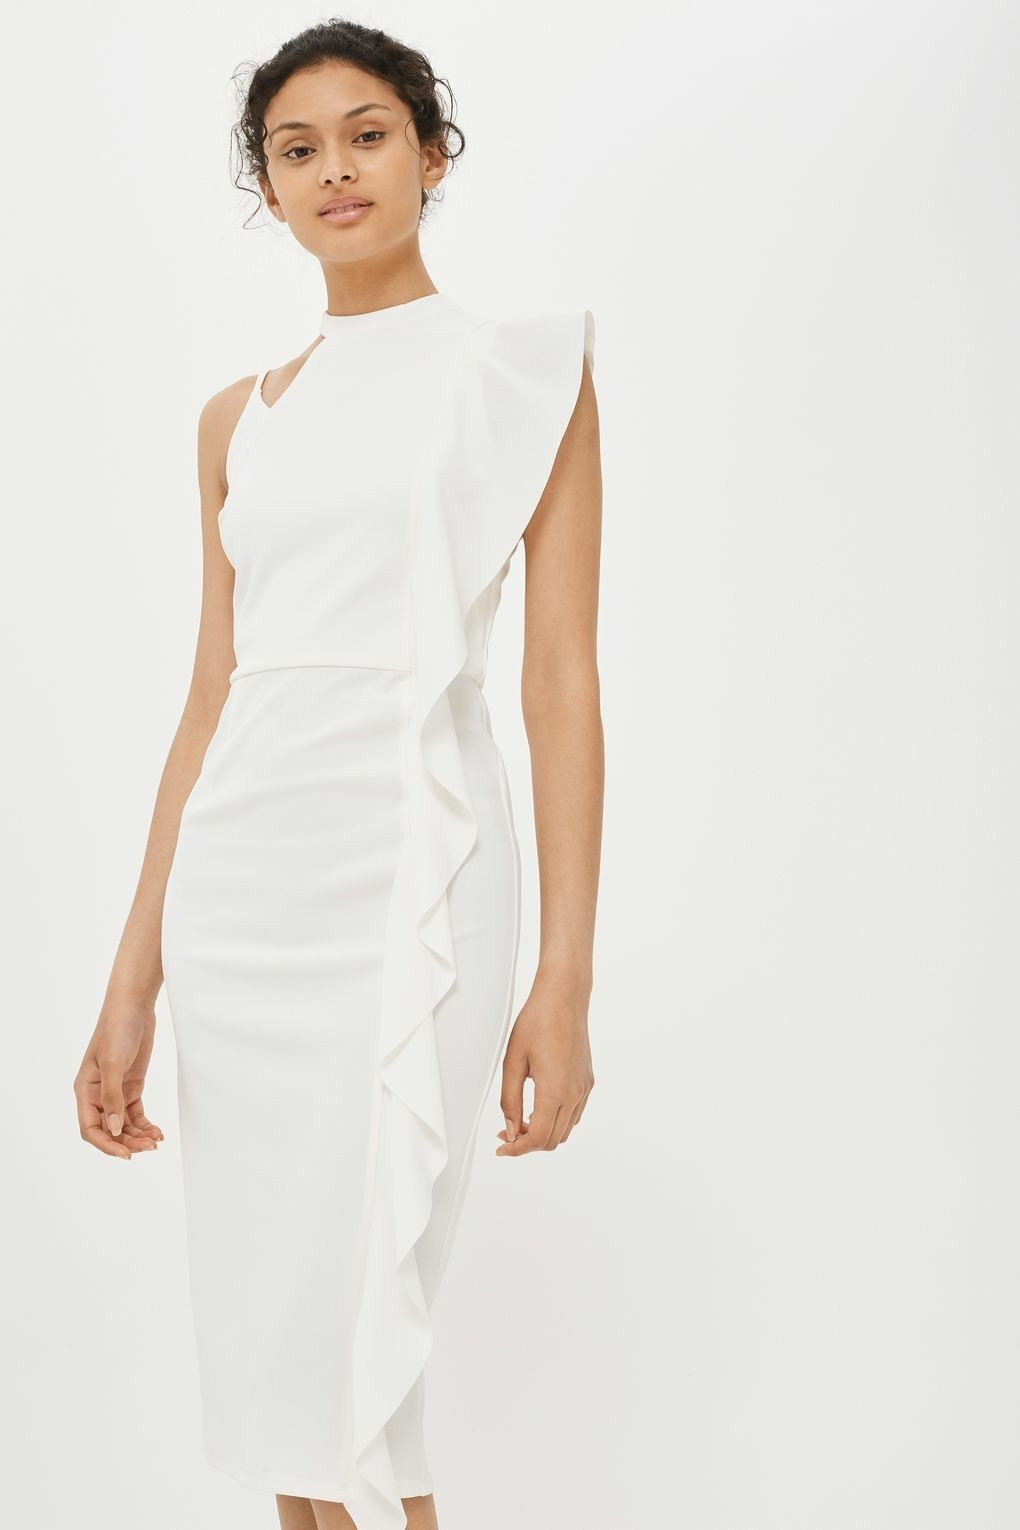 Topshop Asymmetrical Ruffle Midi Dress With Images  Top